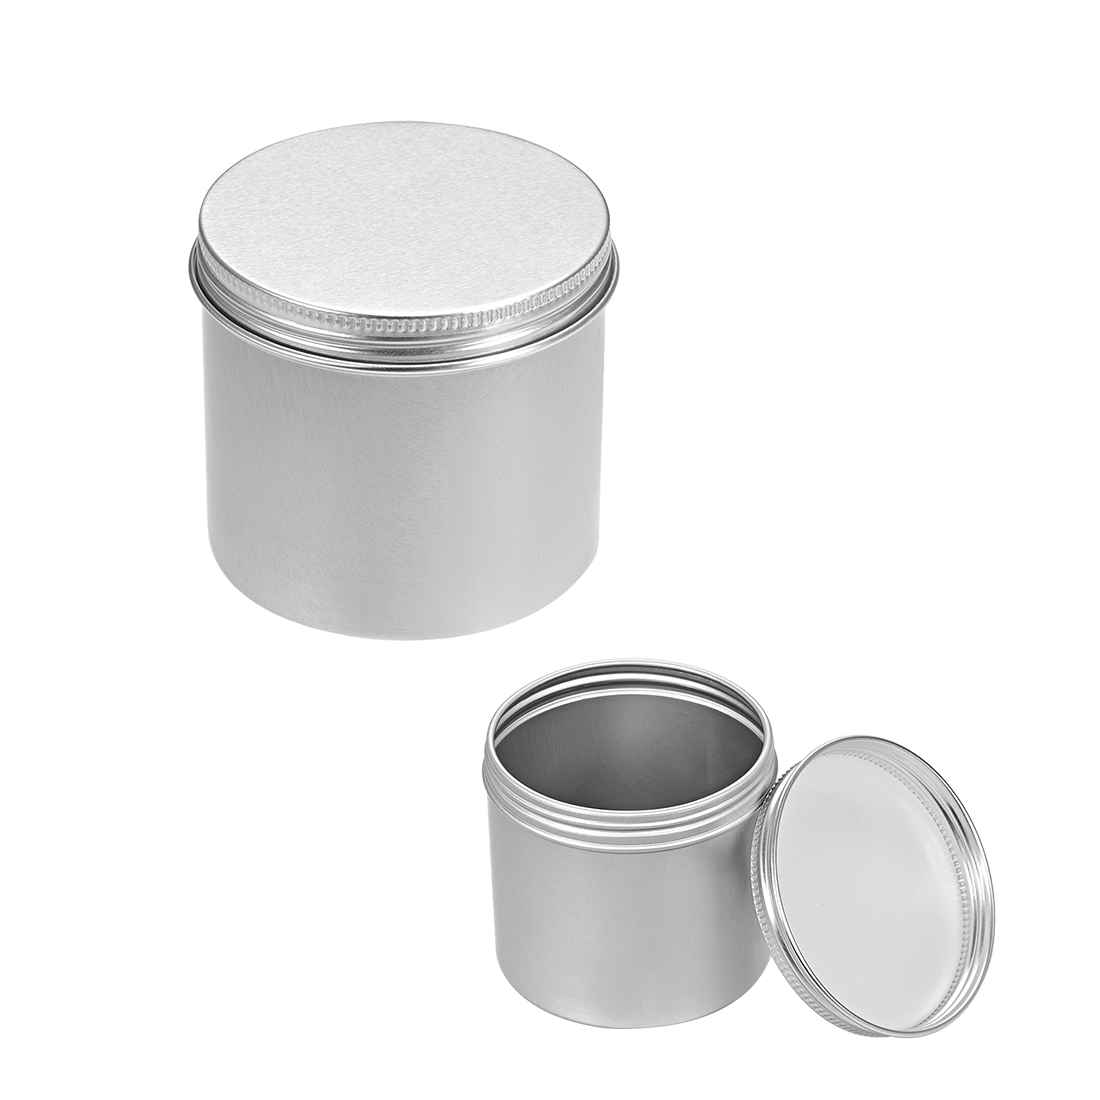 8.3oz Round Aluminum Cans Tin Can Screw Top Metal Lid Containers 250ml, 5pcs